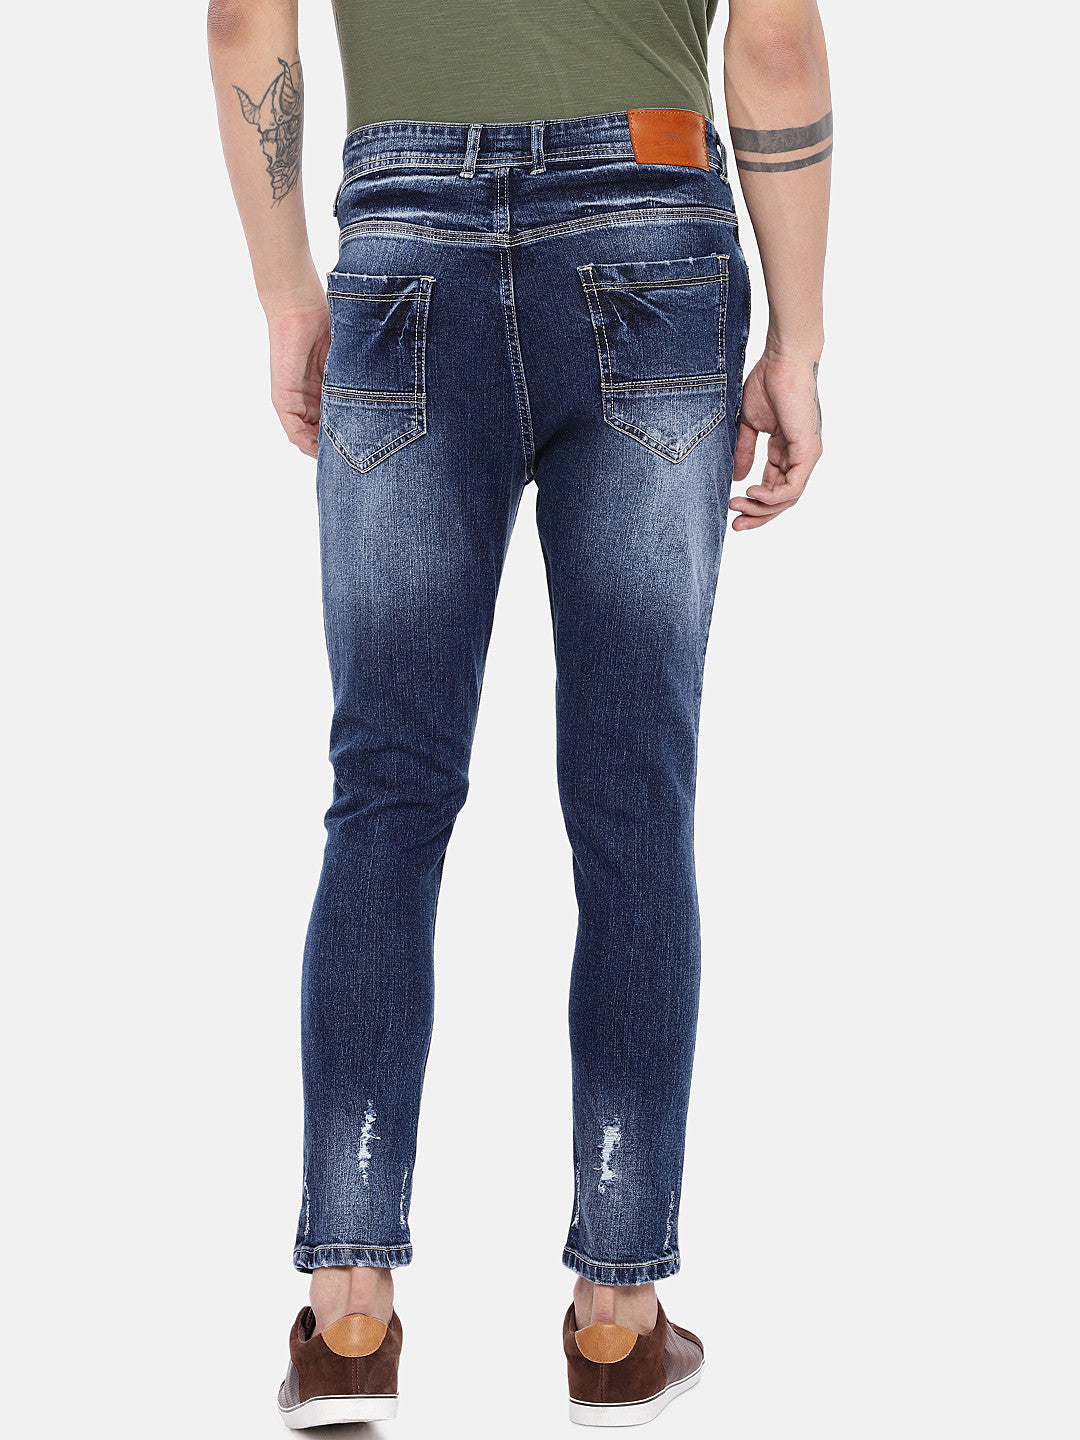 Blue Regular Fit Mid-Rise Highly Distressed Jeans-3